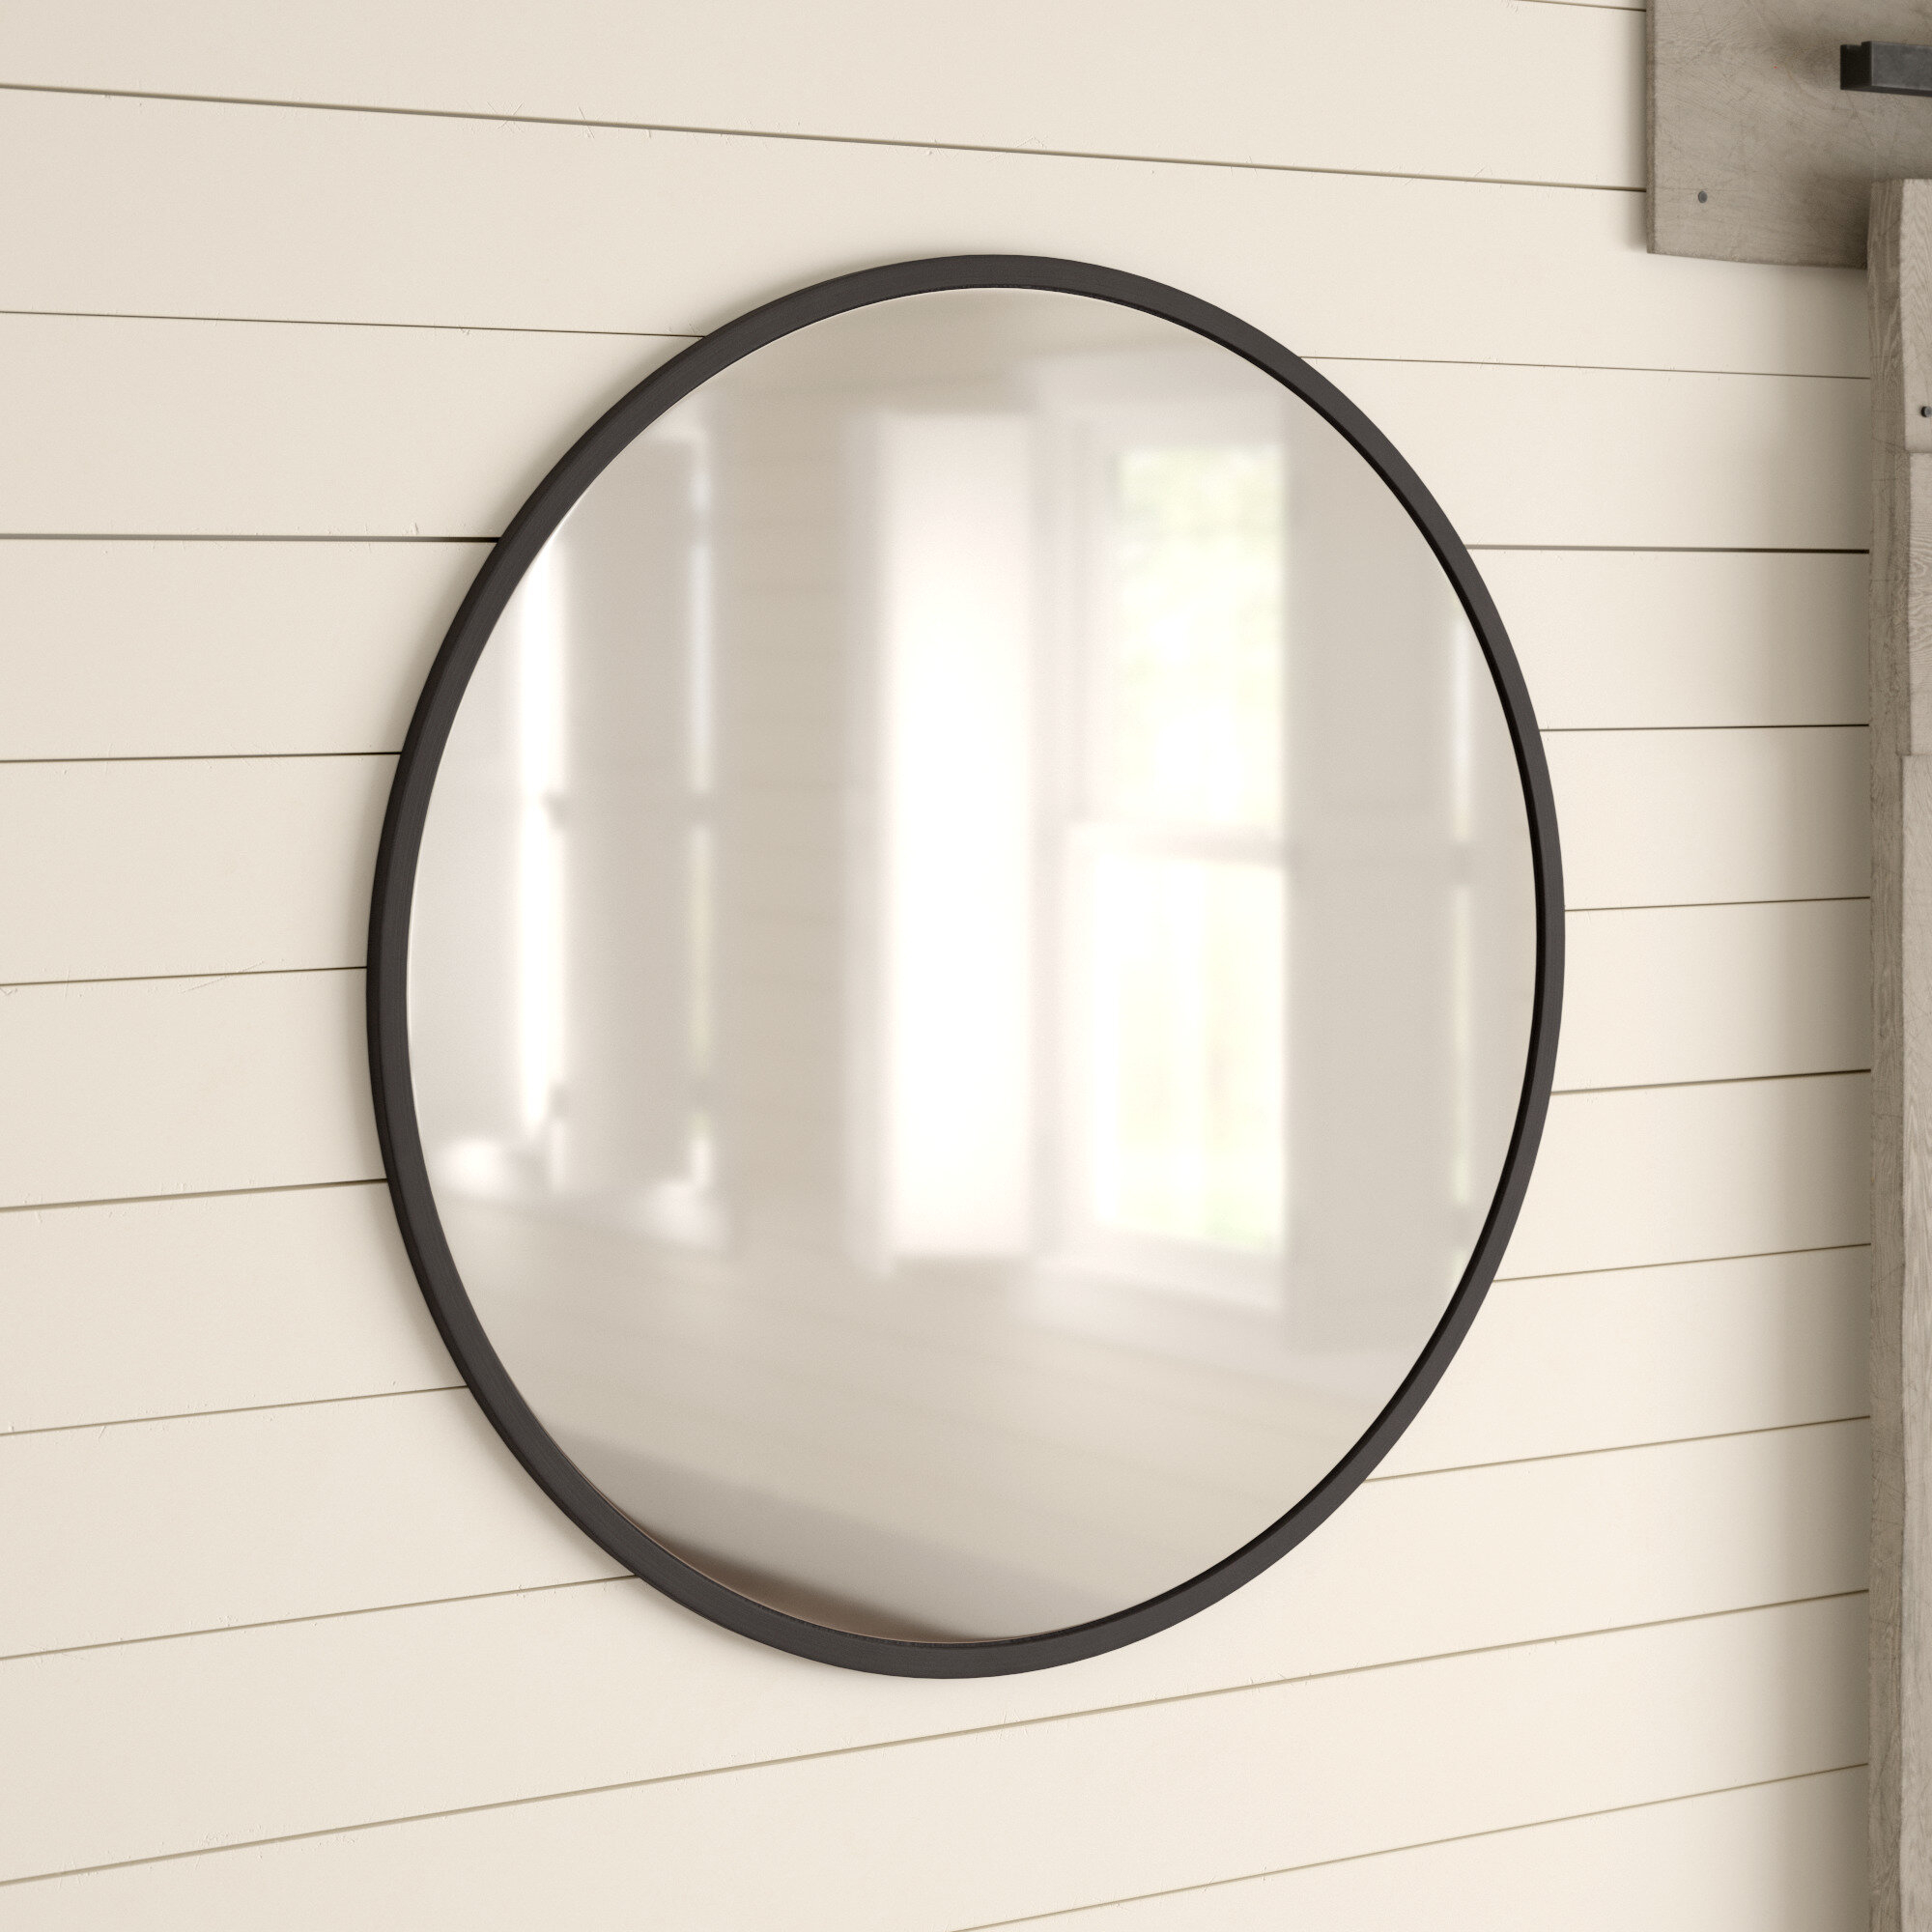 Umbra Hub Modern And Contemporary Accent Mirror Throughout Guidinha Modern & Contemporary Accent Mirrors (View 14 of 30)